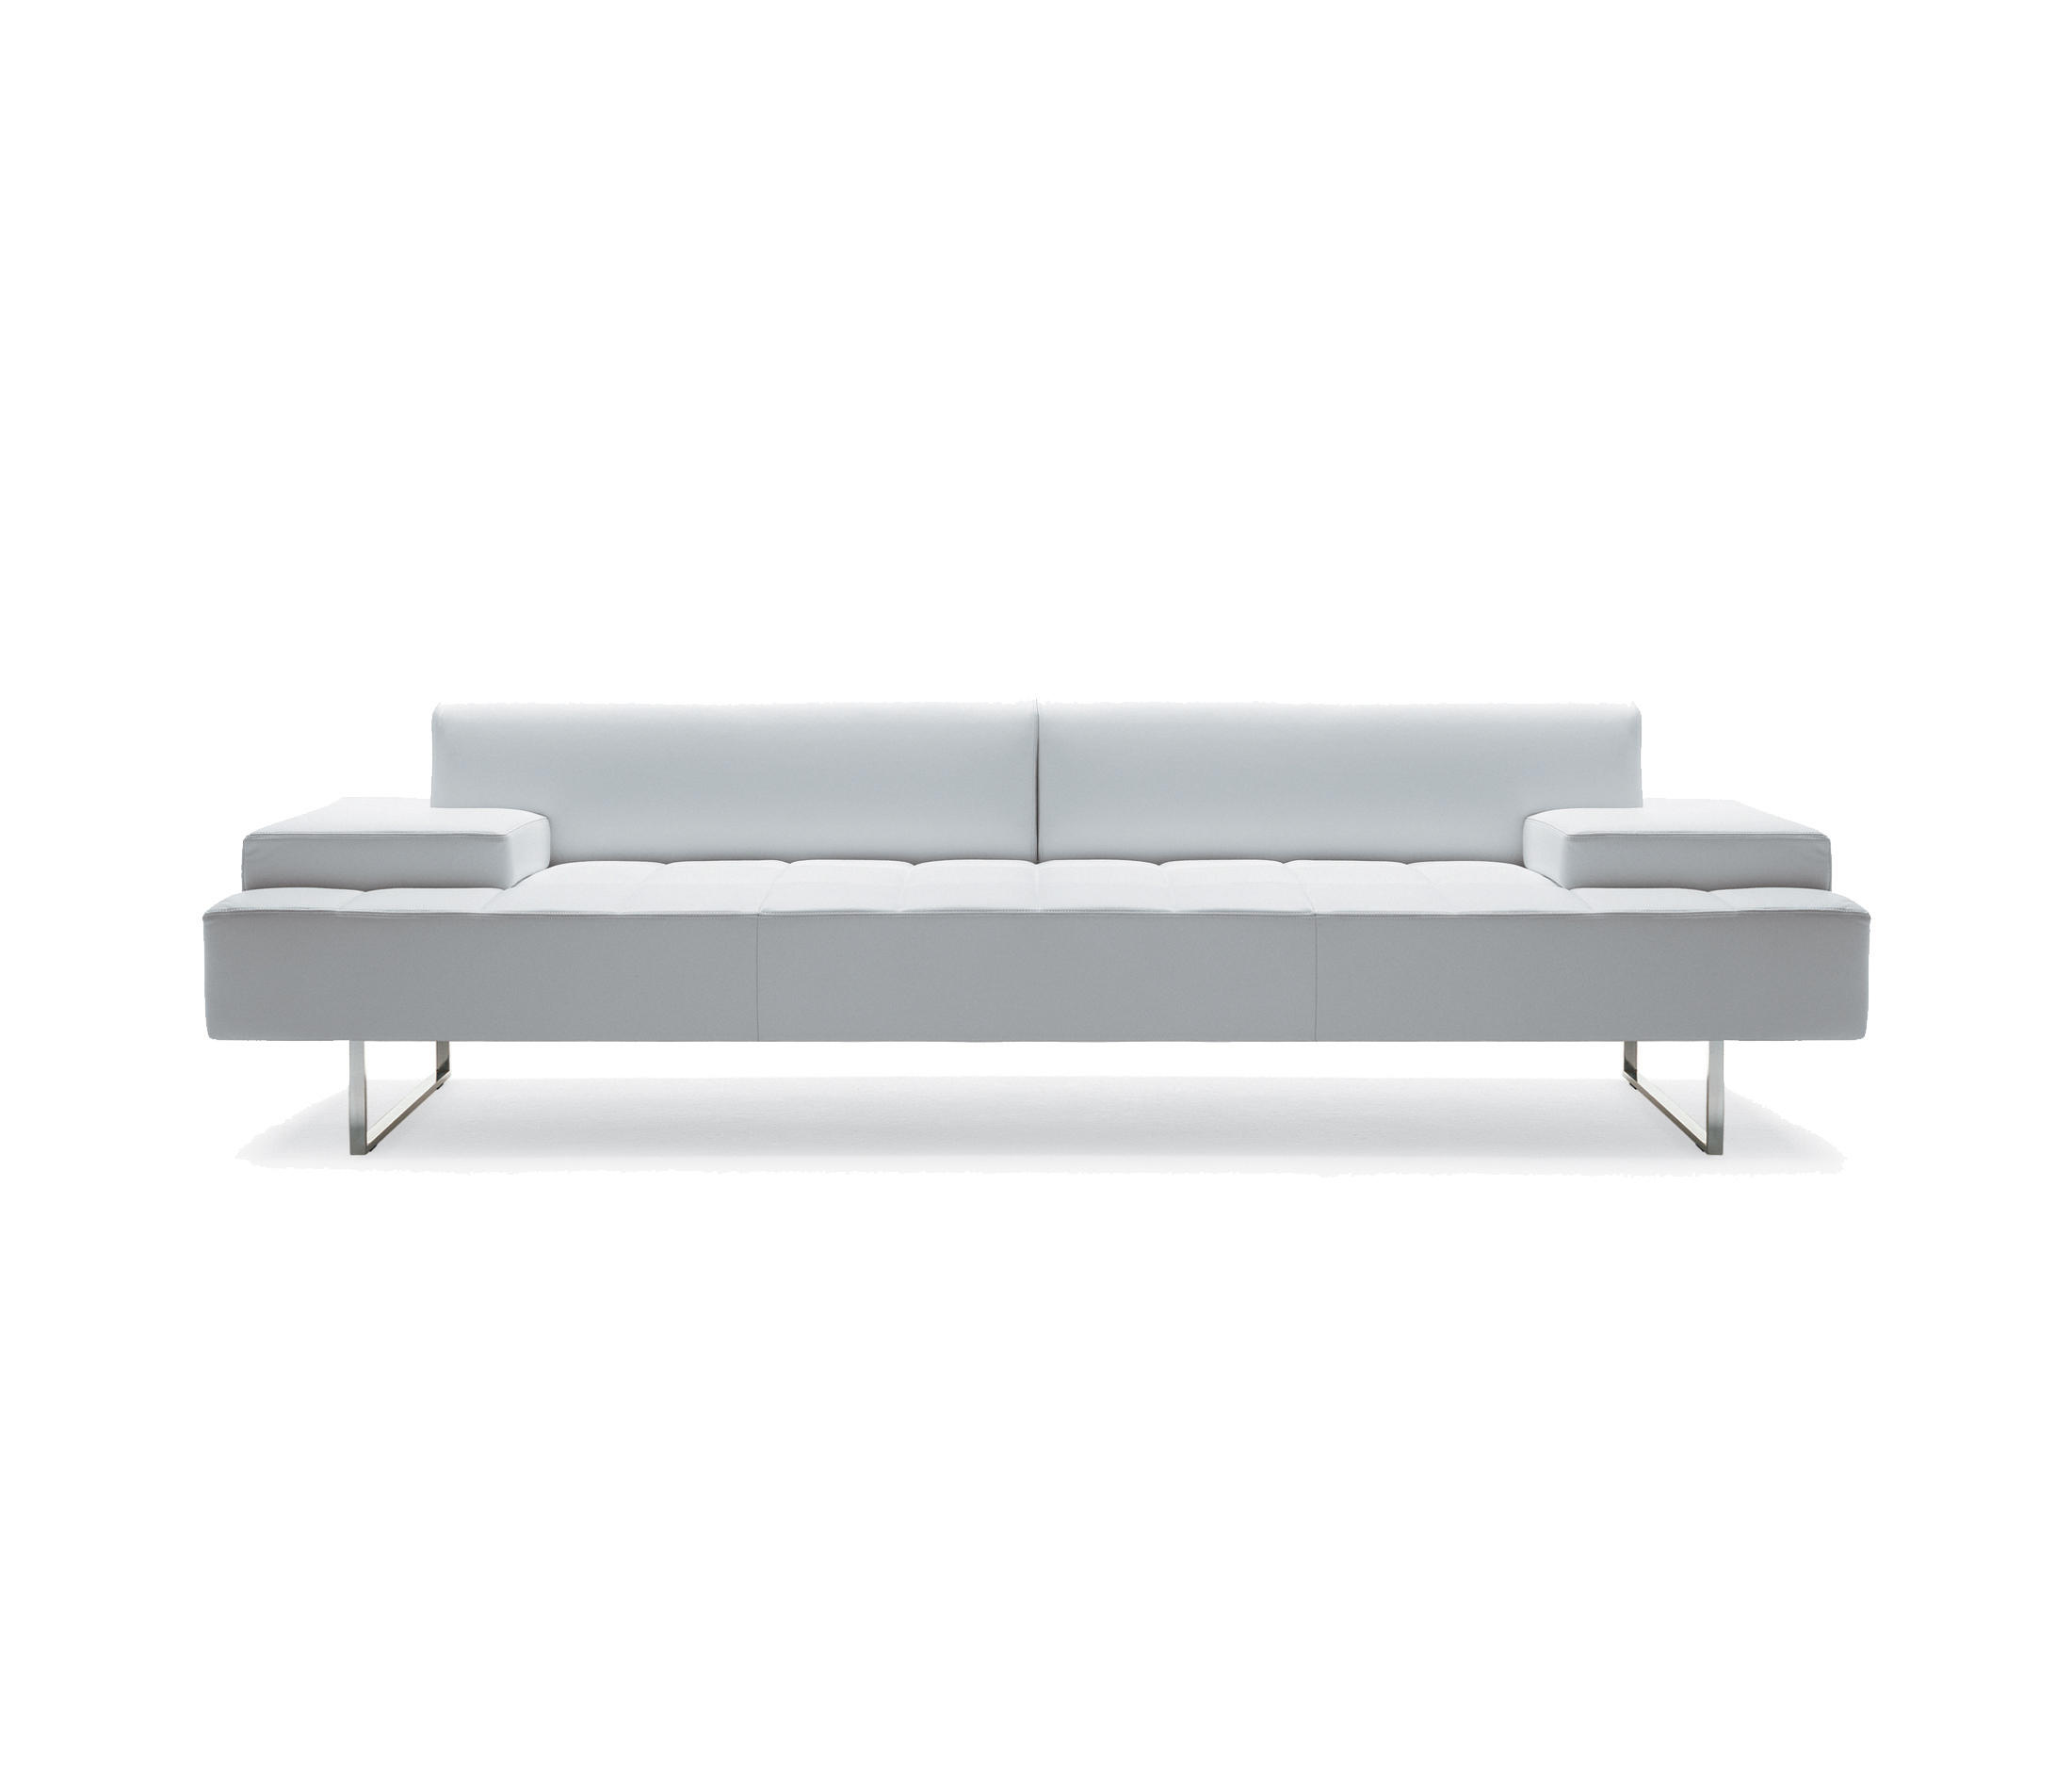 QUADRA - Sofas from Poltrona Frau | Architonic